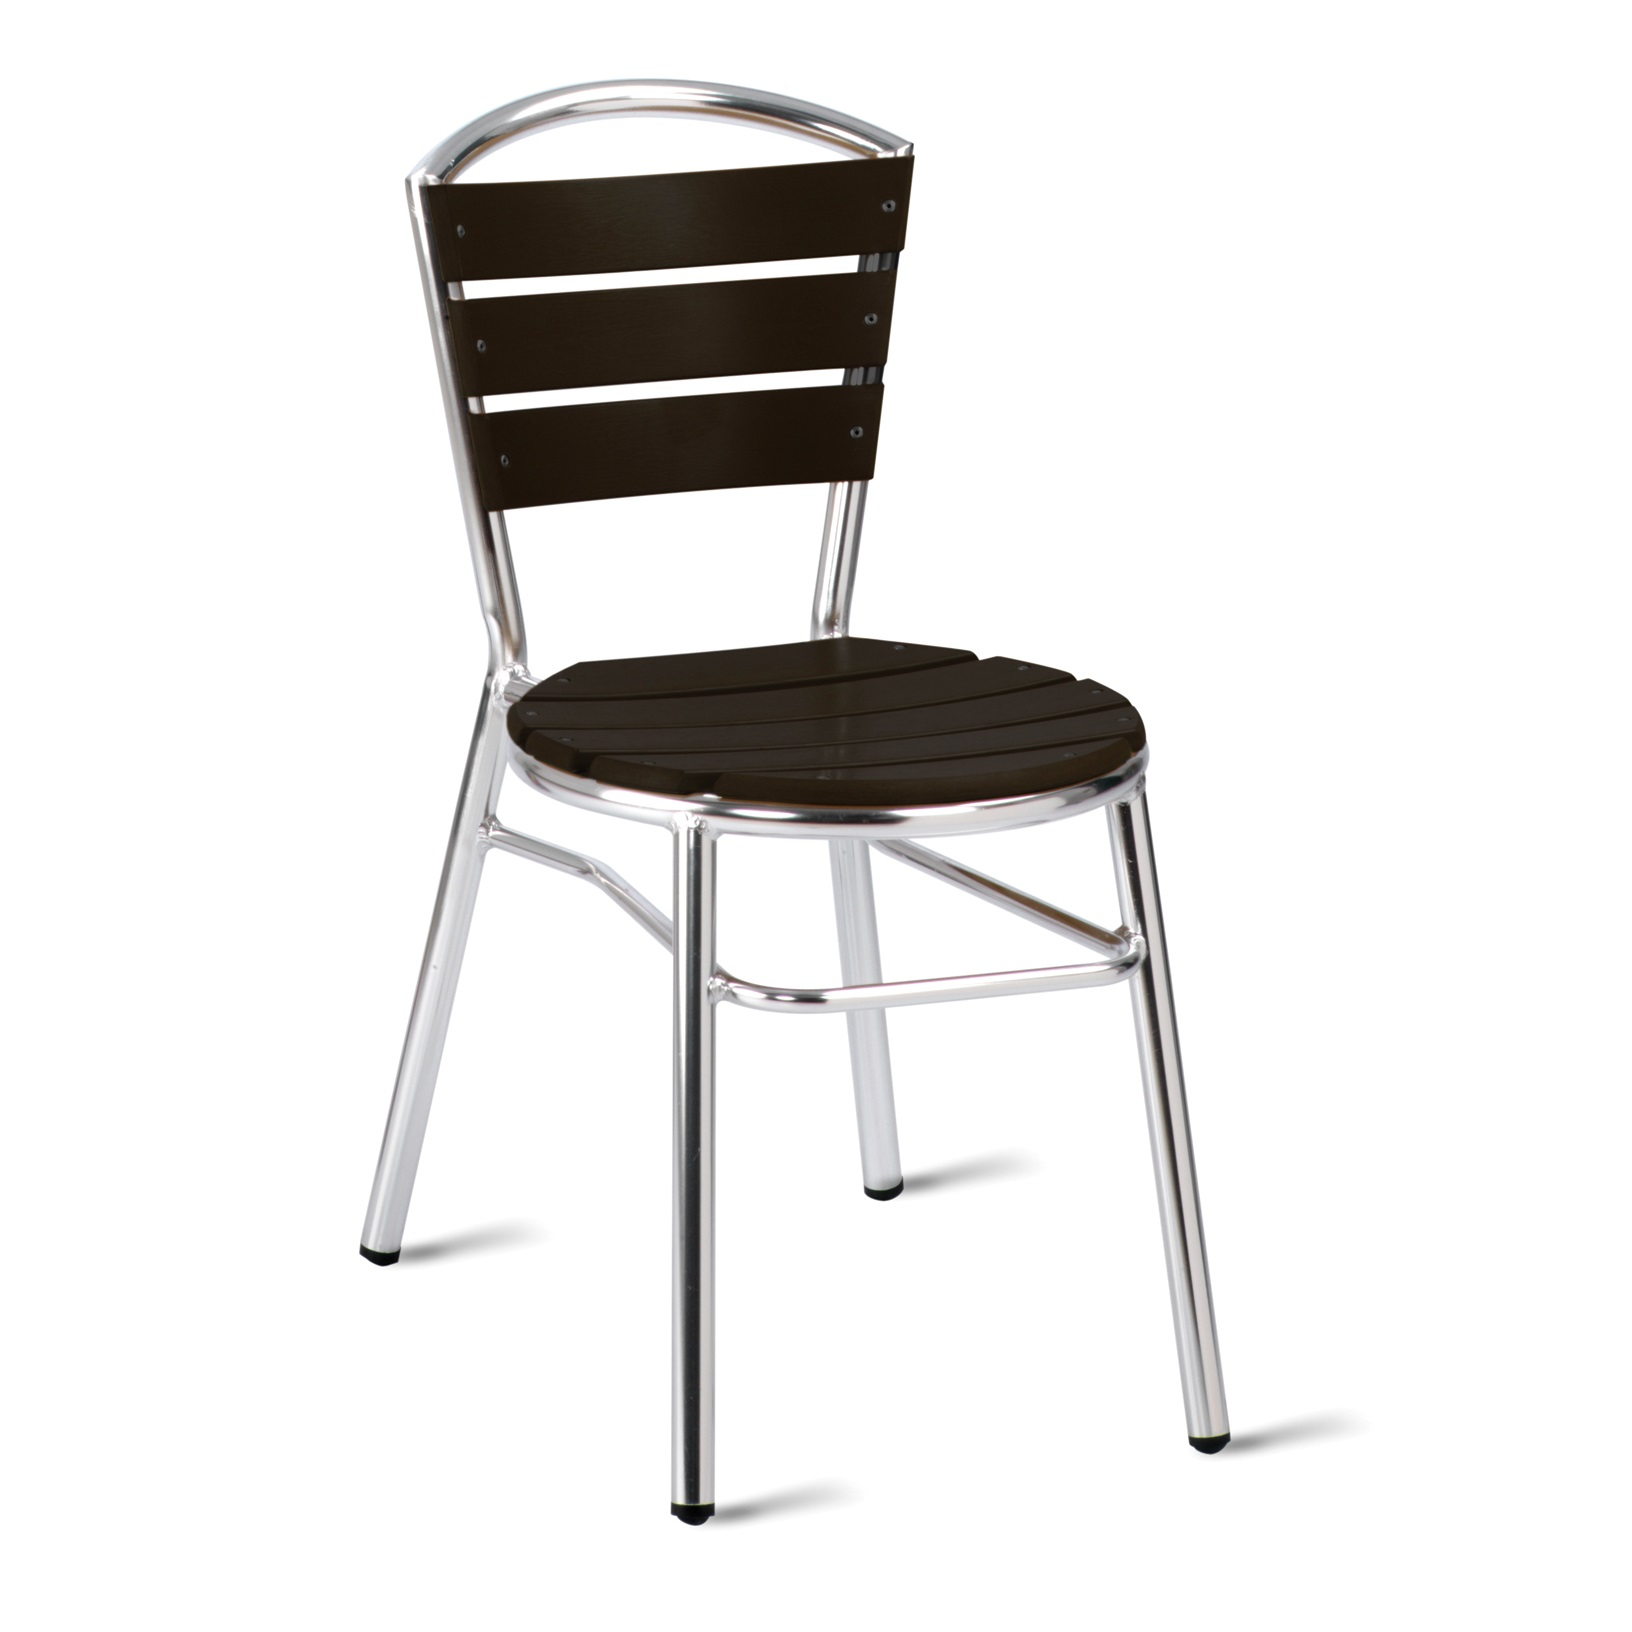 Burley outdoor cafe chairs 2 finishes